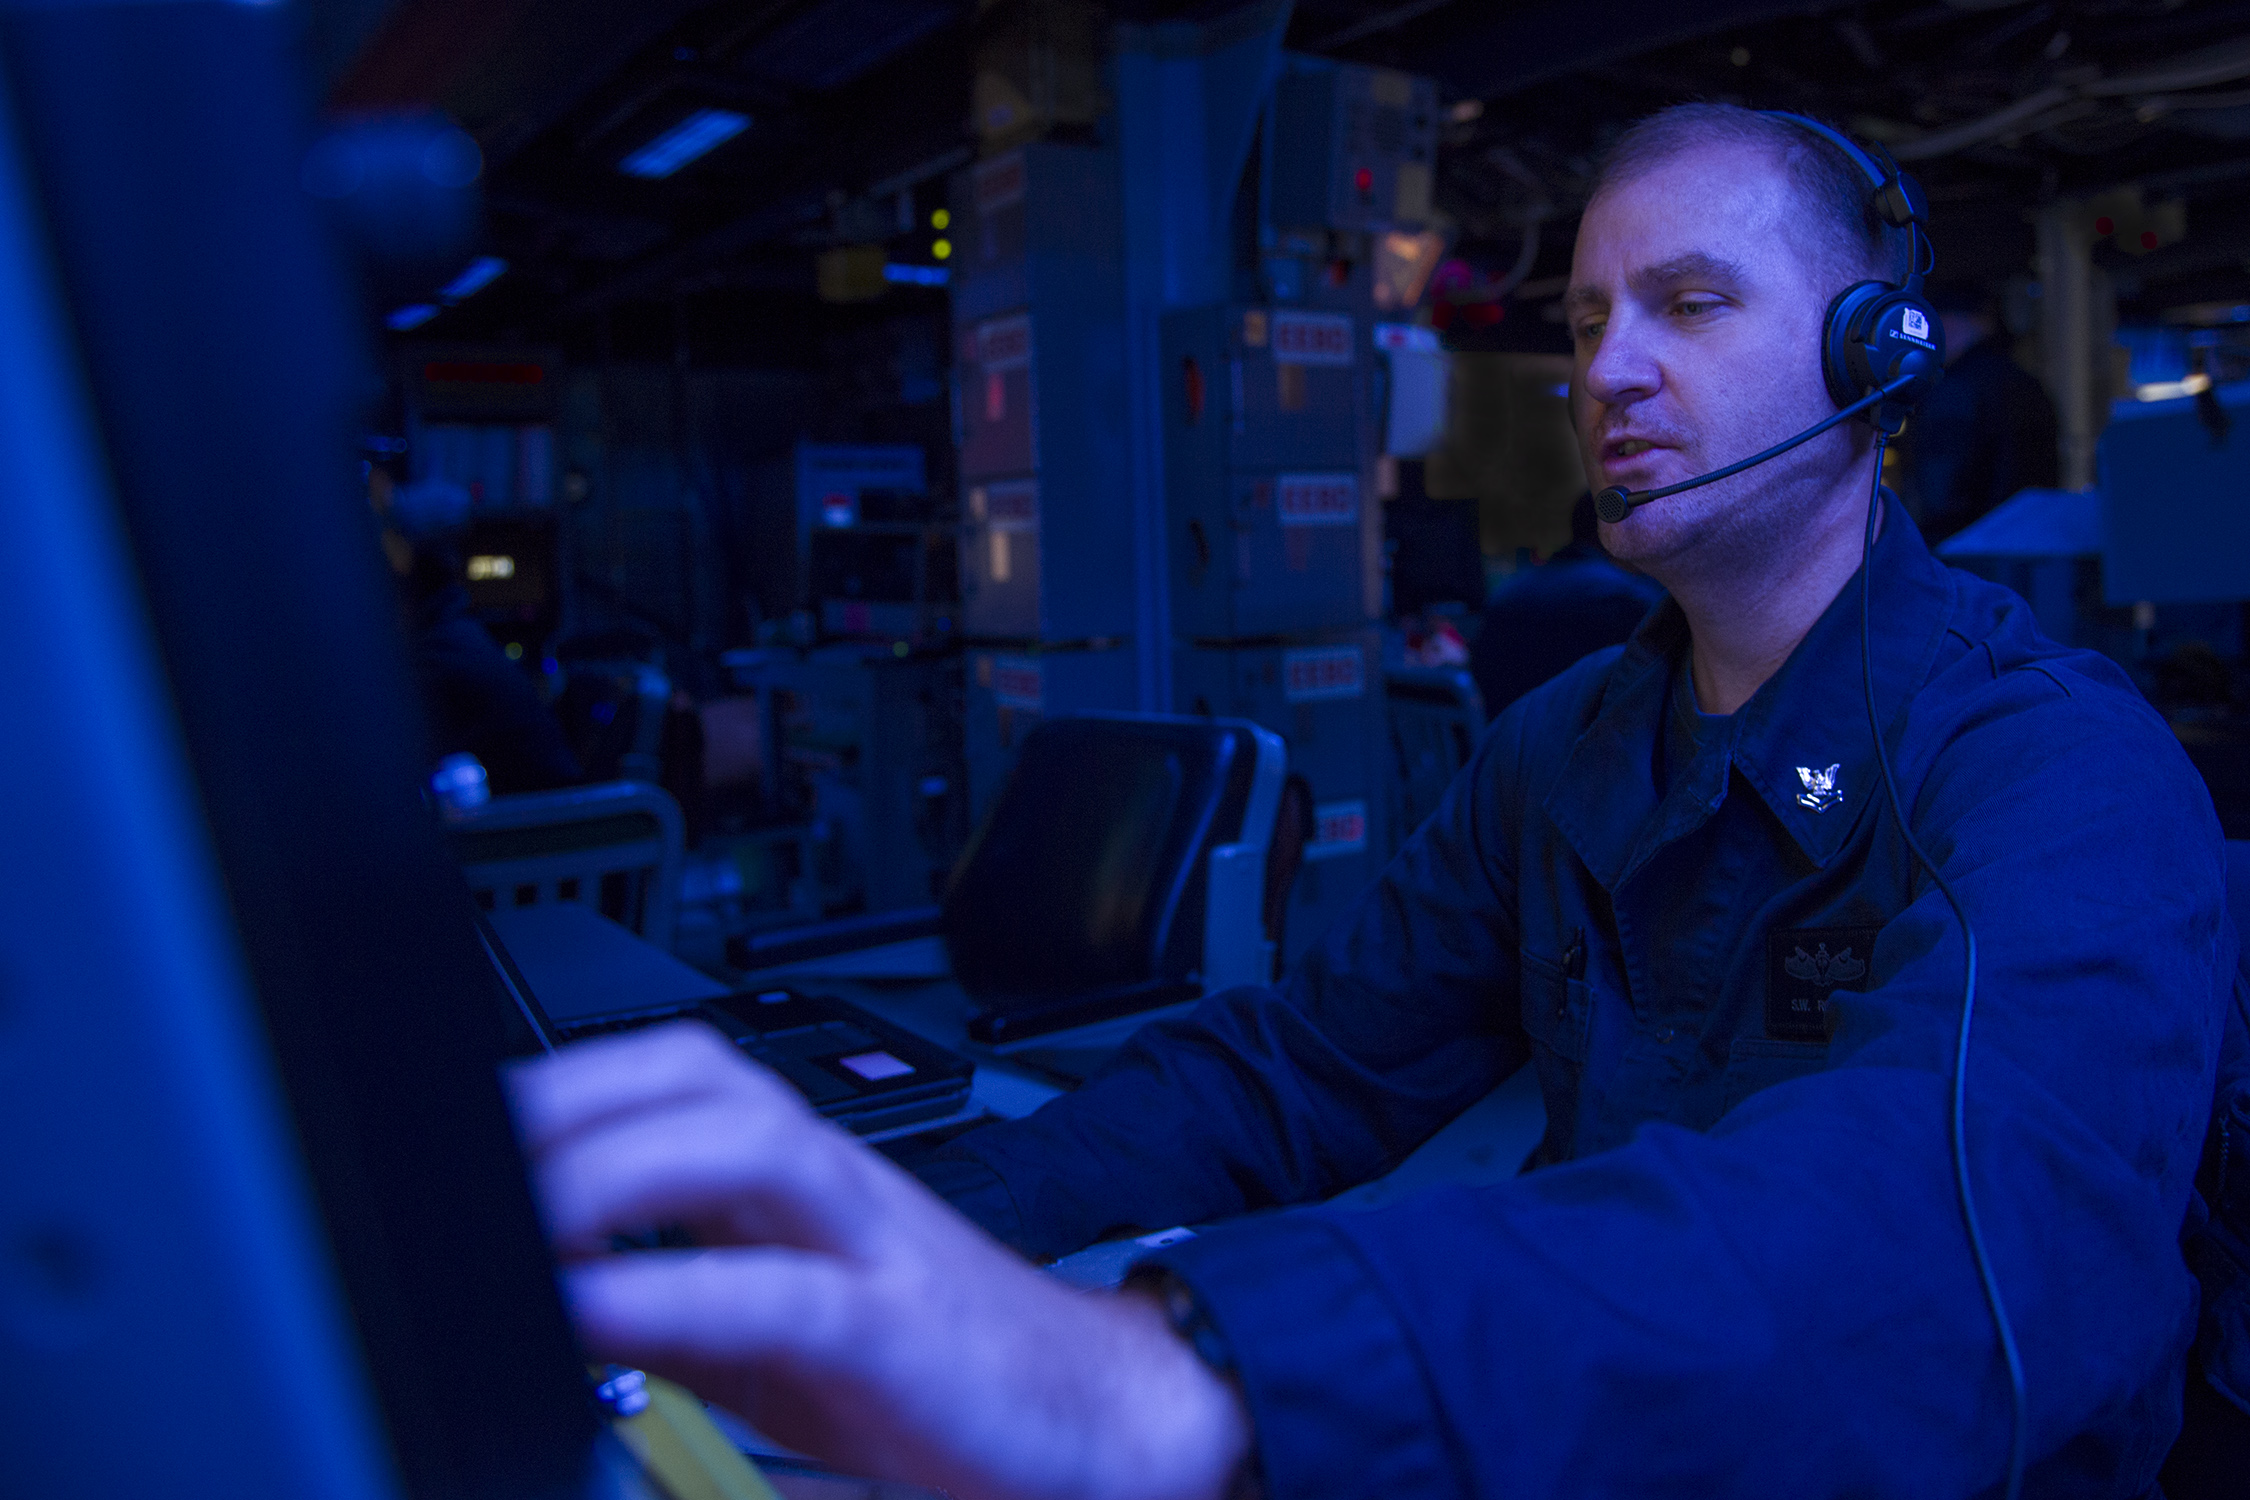 U.S. Navy boss: Network everything